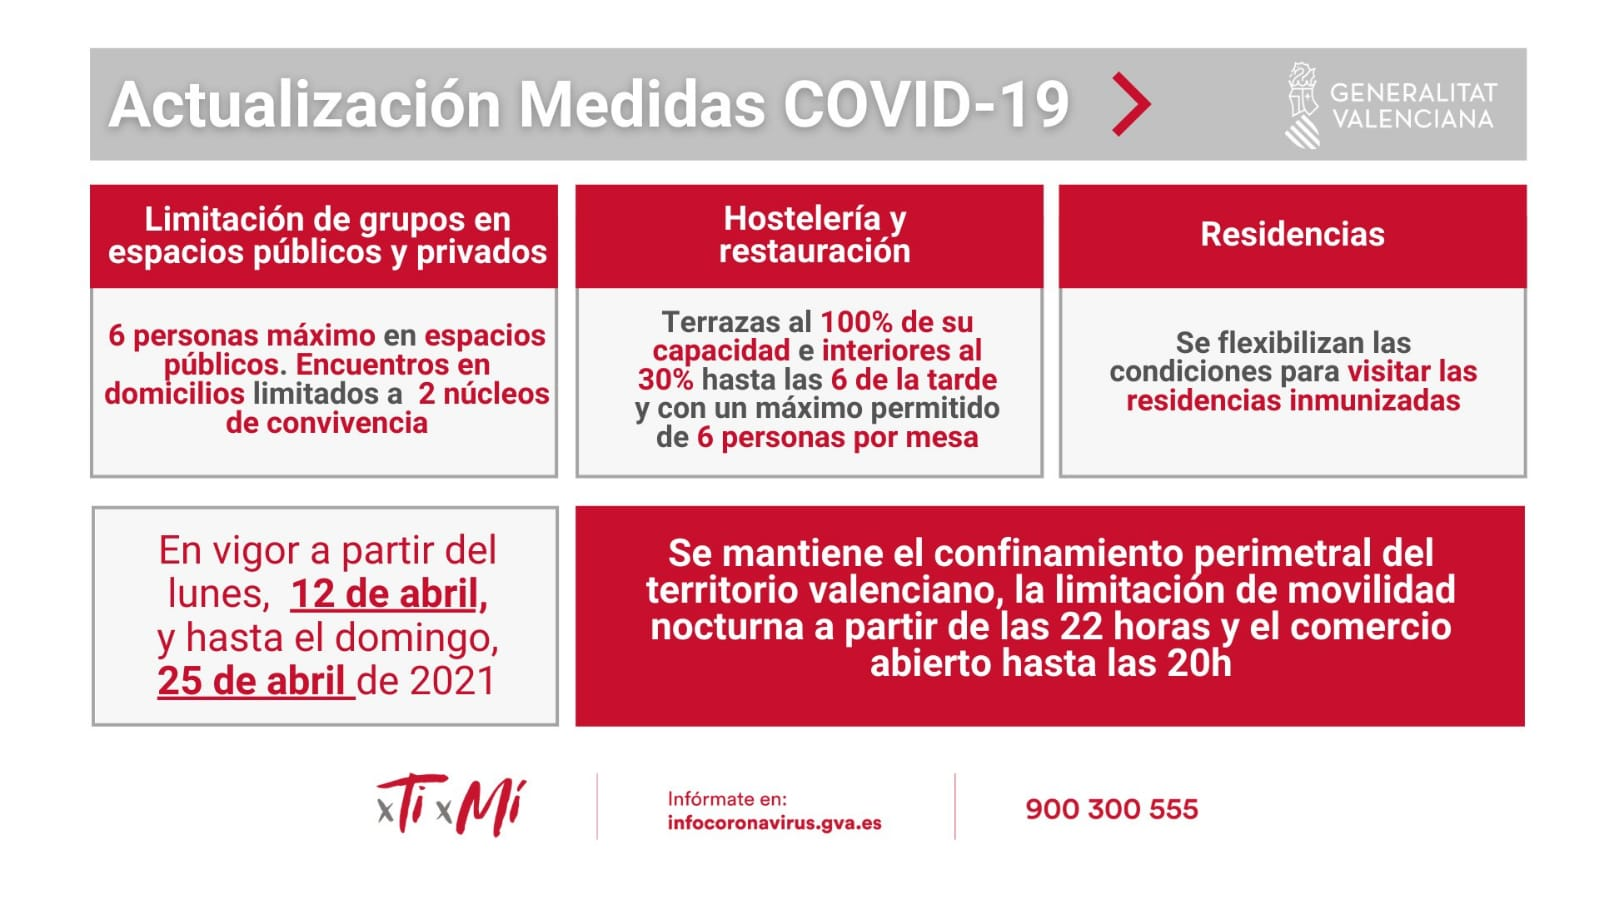 Update of COVID-19 measures in the Valencian Community